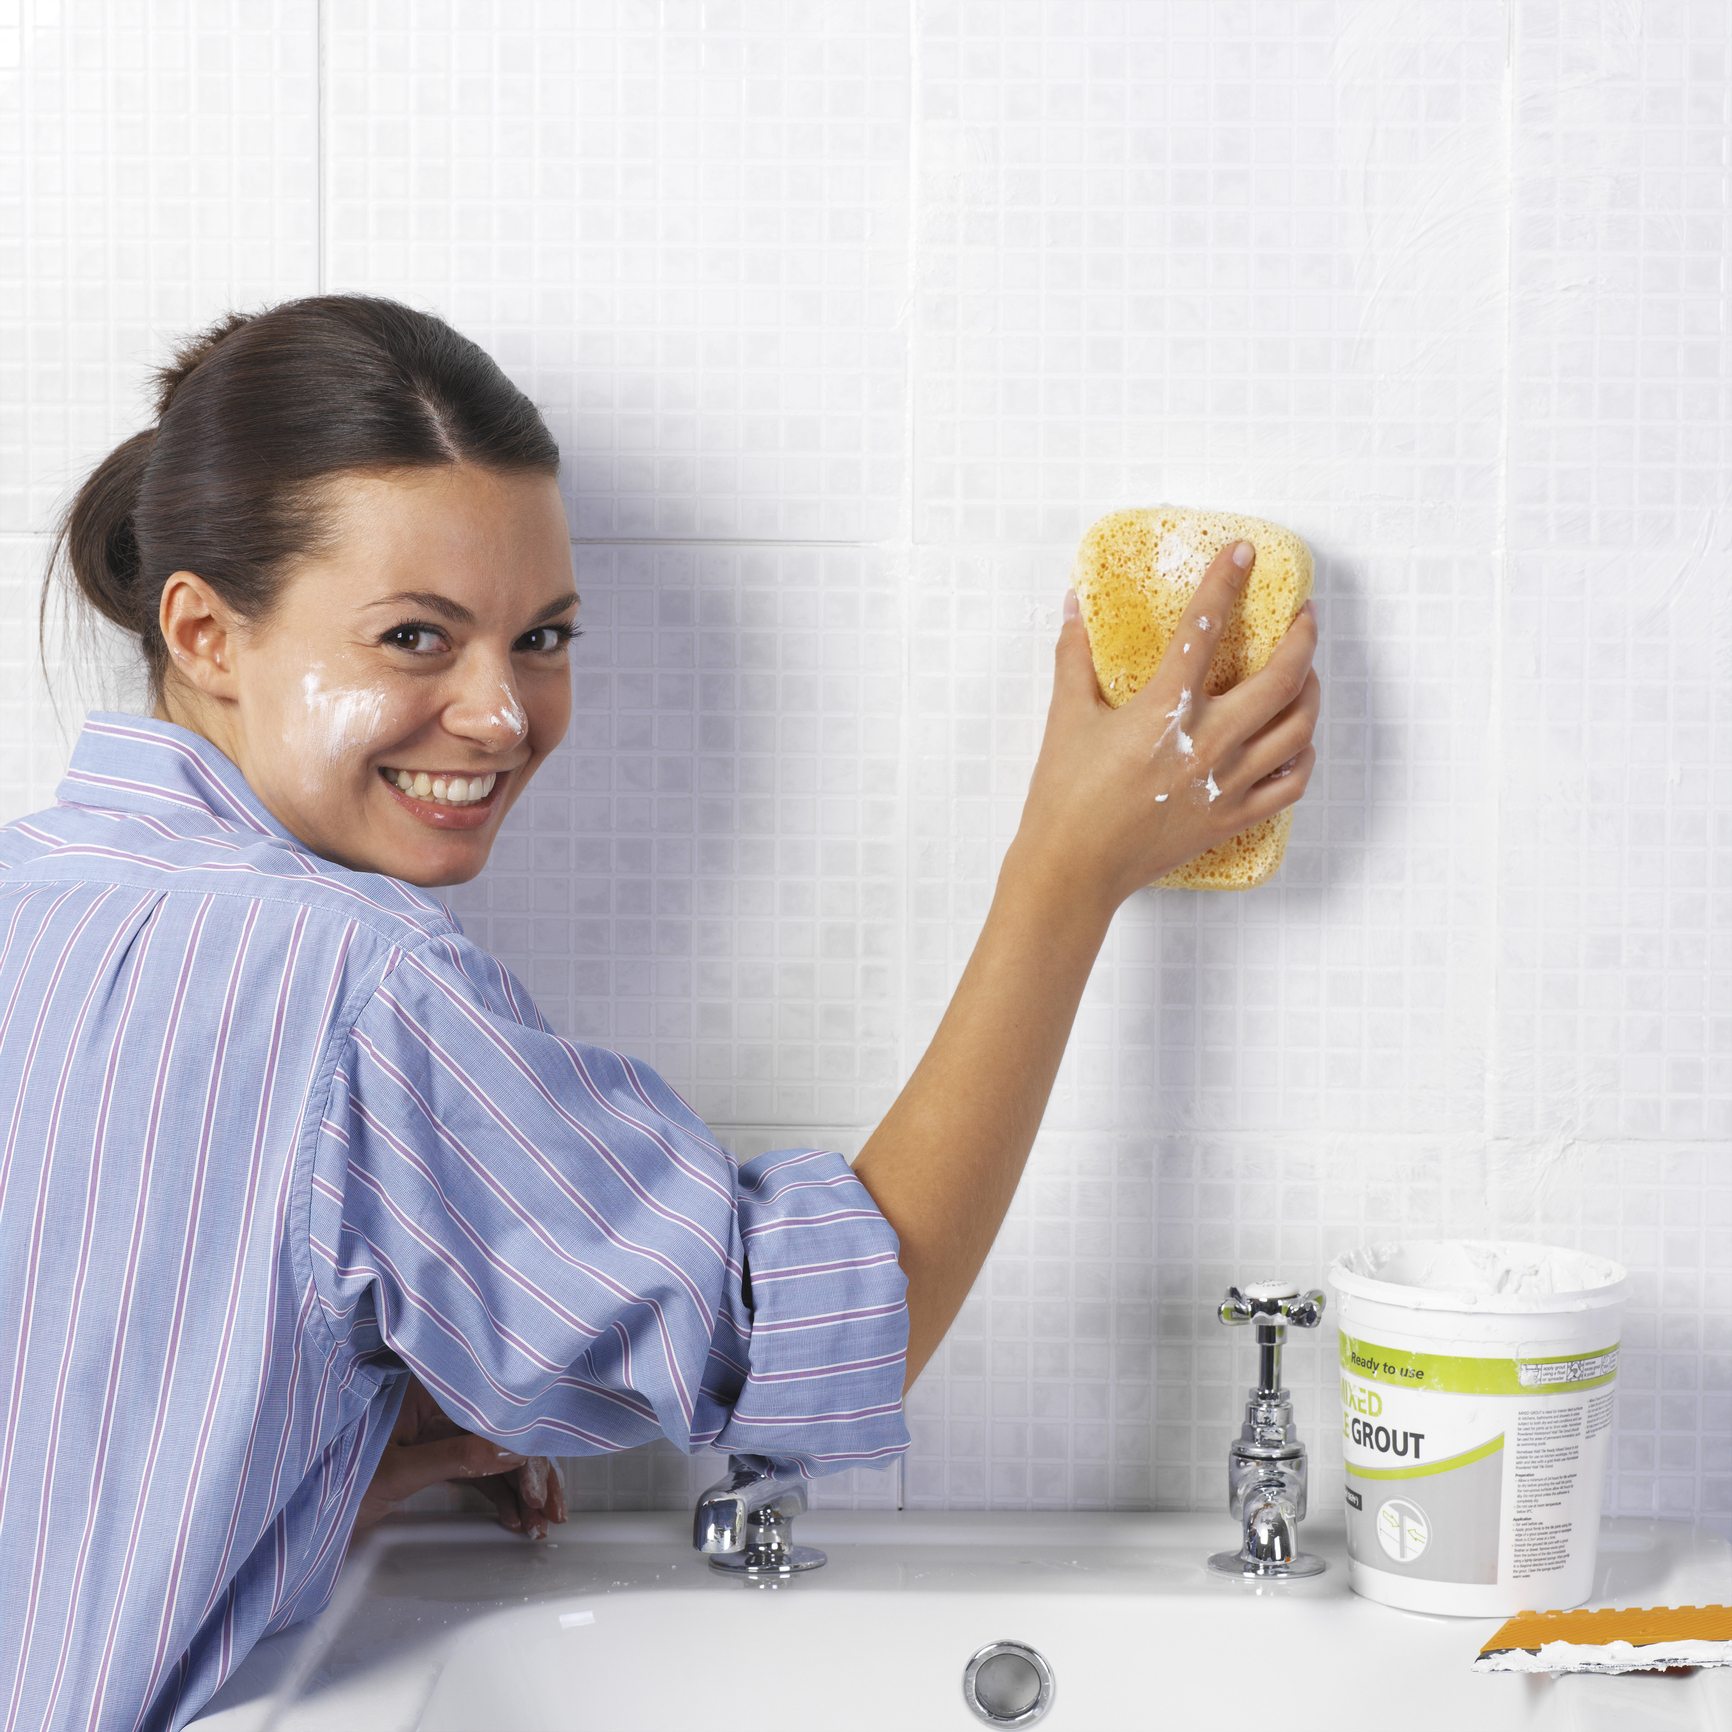 Woman scrubbing bathroom wall (Thinkstock/PA)